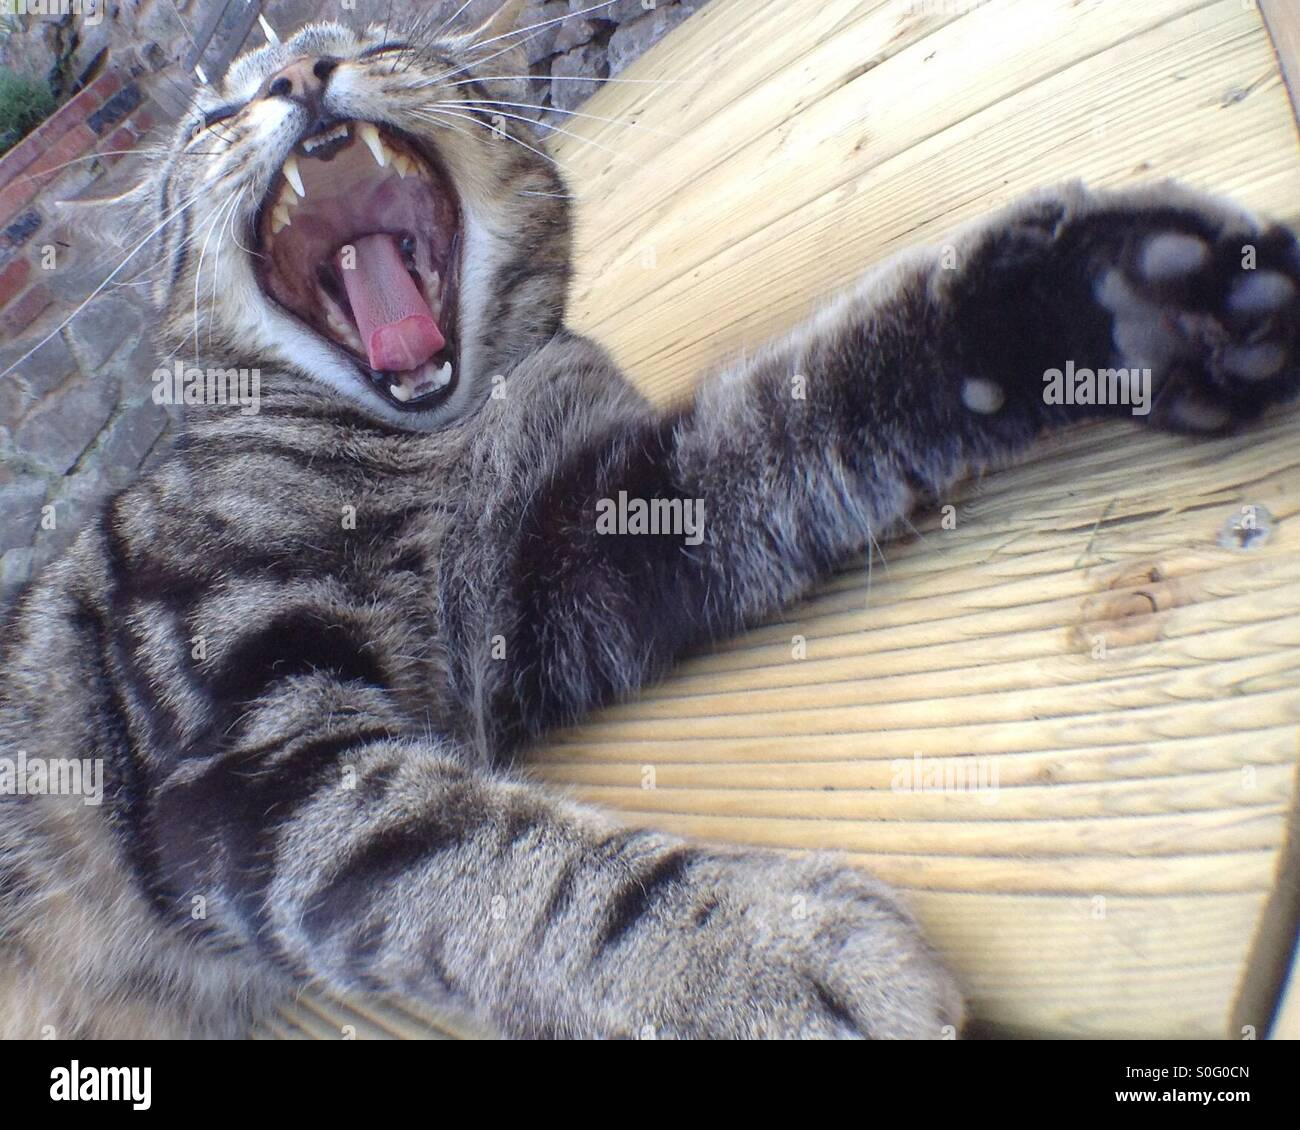 Yawning cat - Stock Image